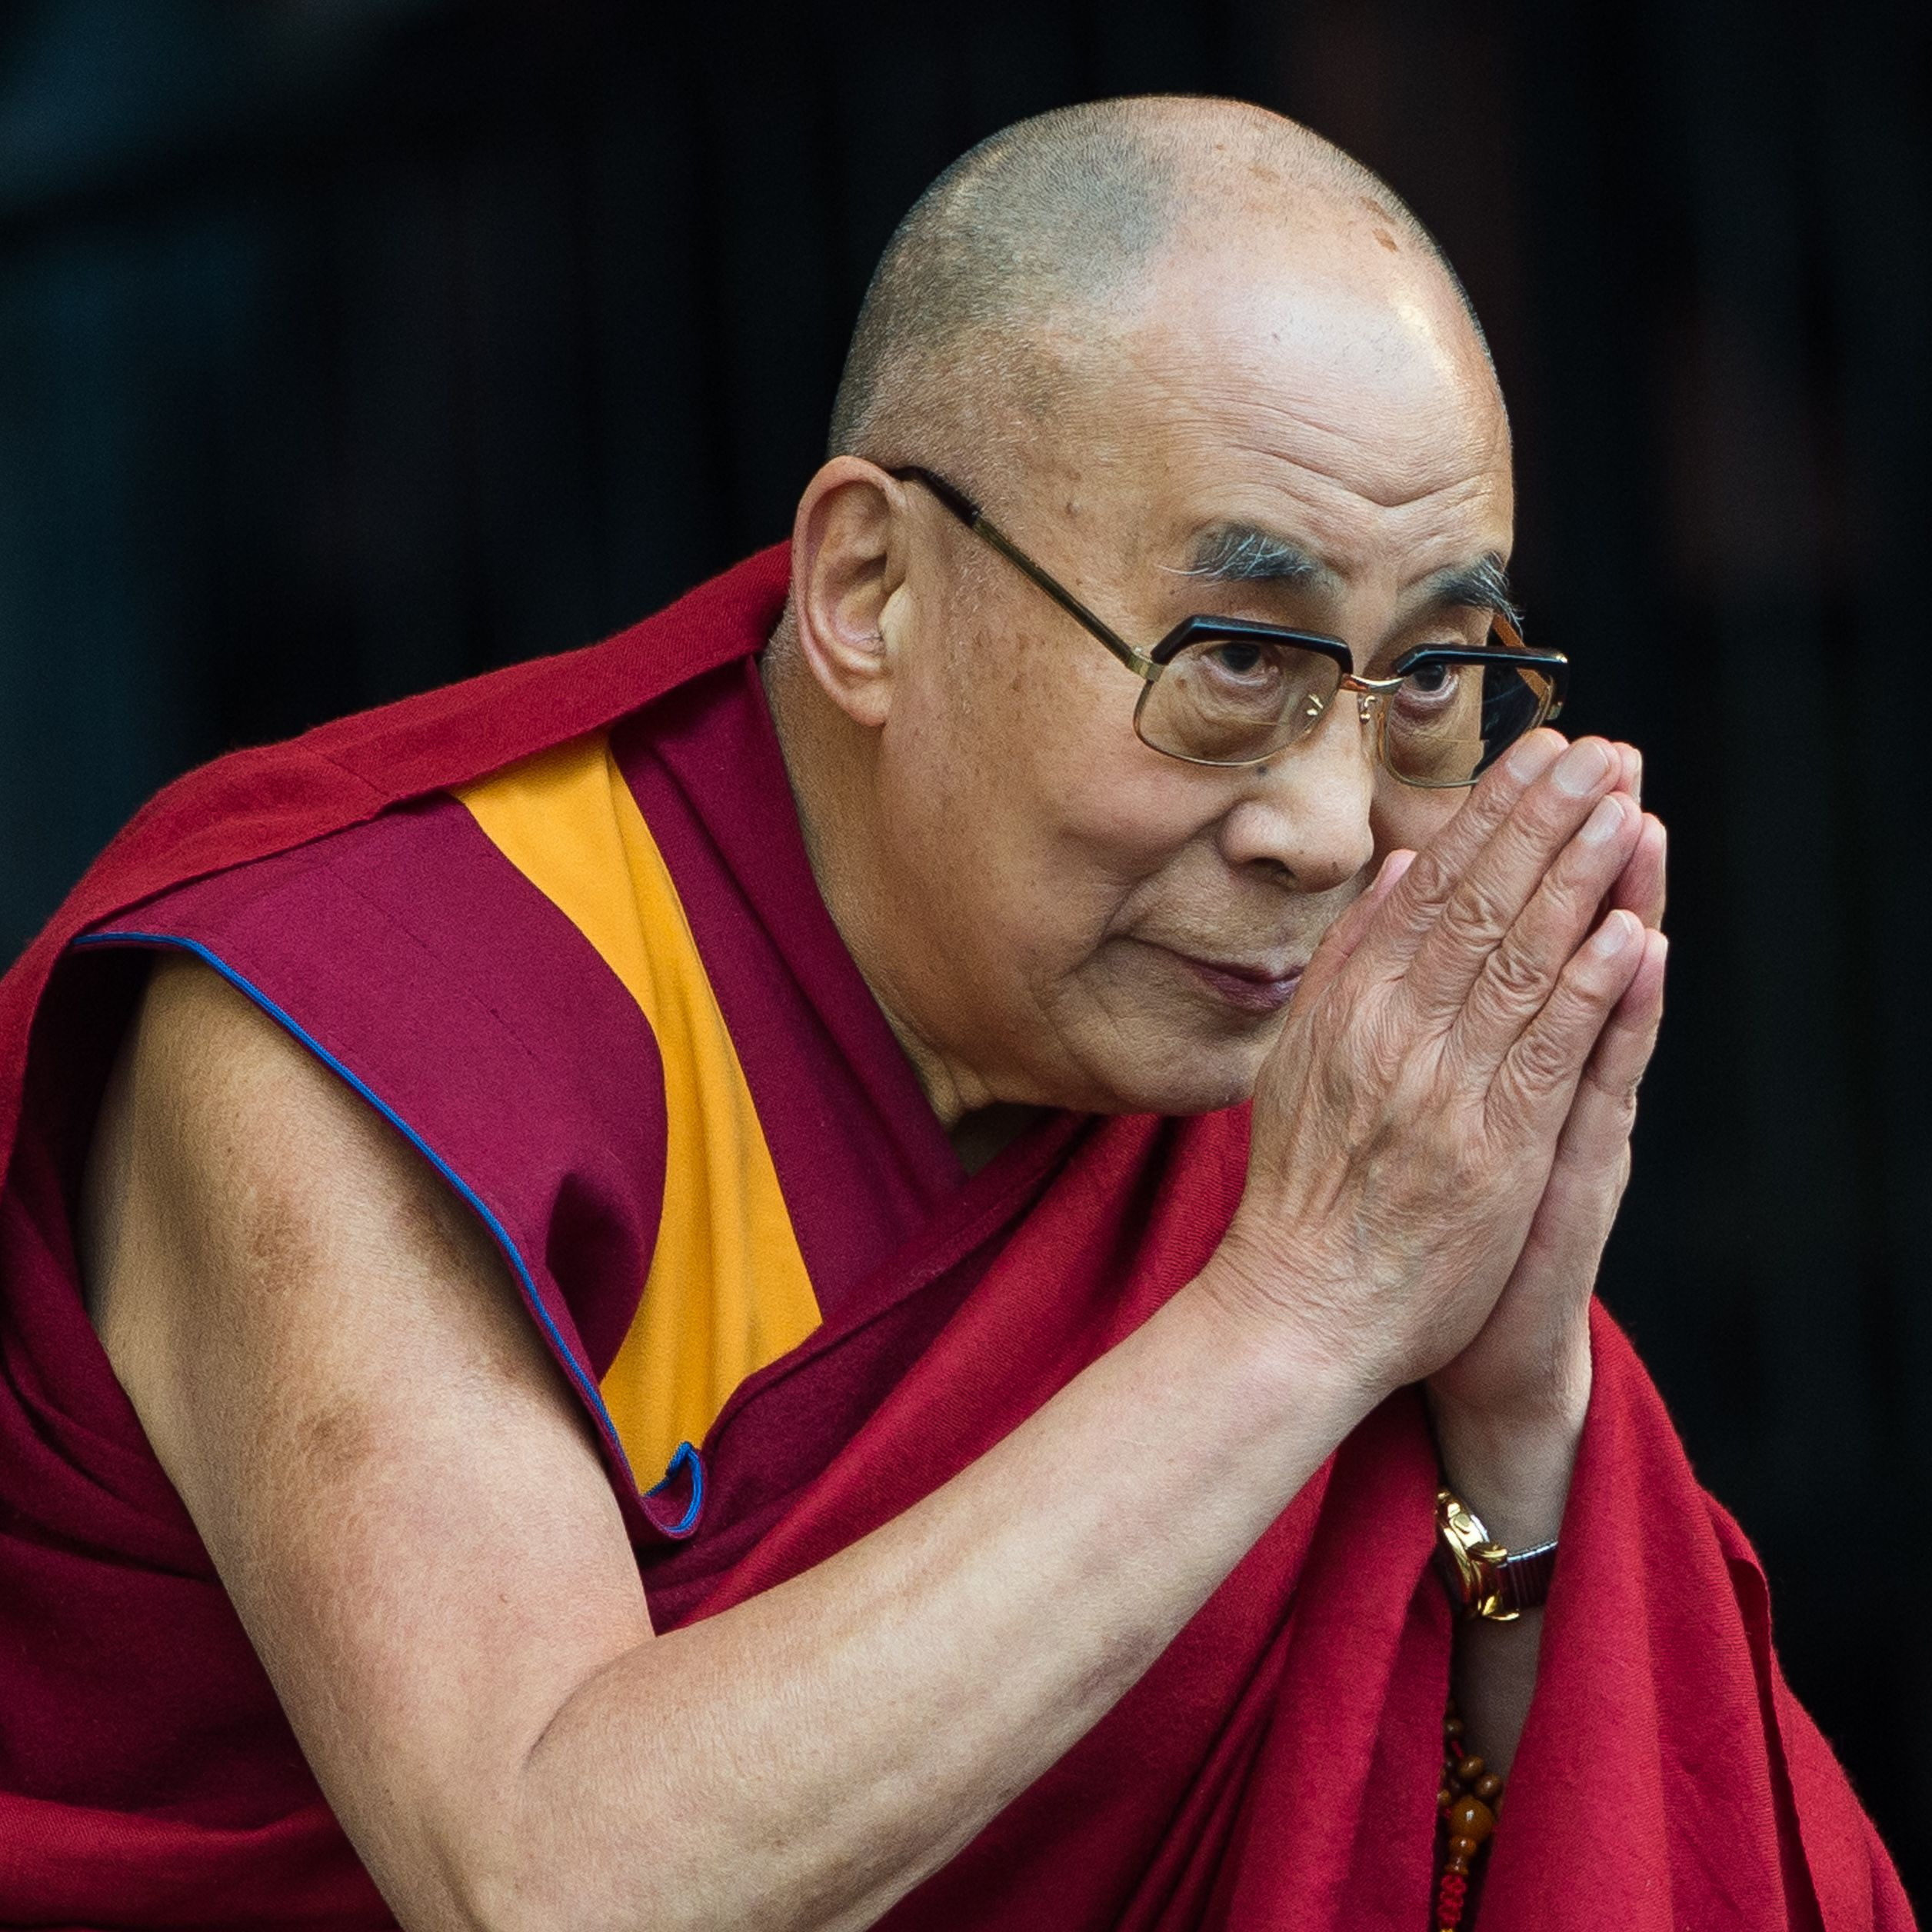 the 14th dalai lama resides in